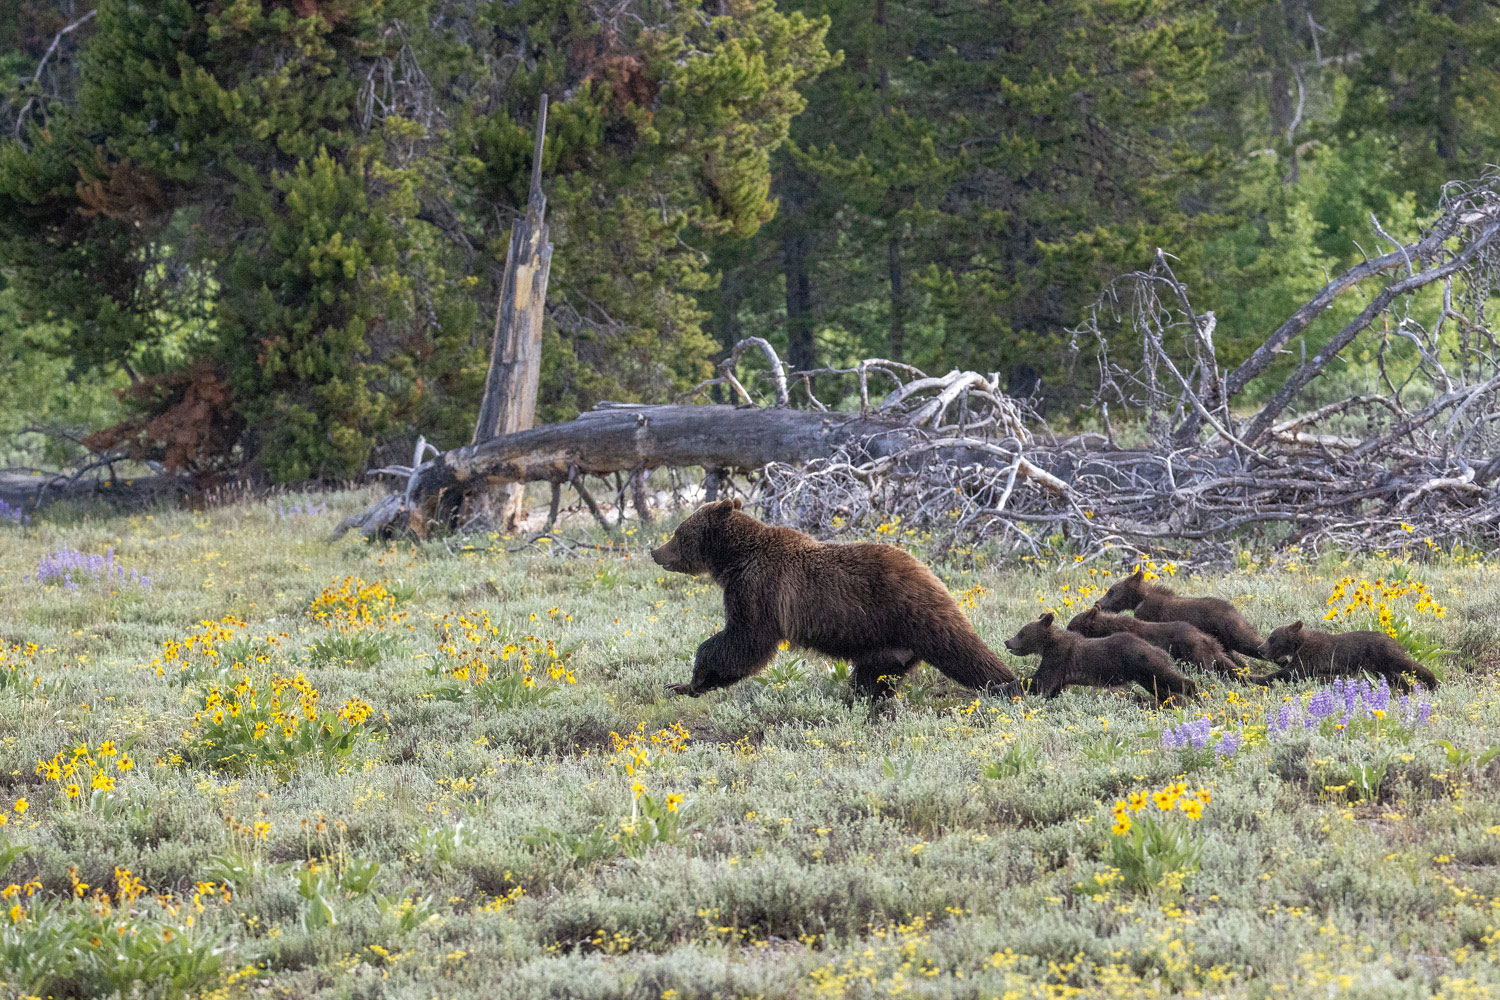 399 and cubs, grizzly, 399, 610, subadult, grizzlies, cub, quad, summer, grand teton, , Tetons, photo